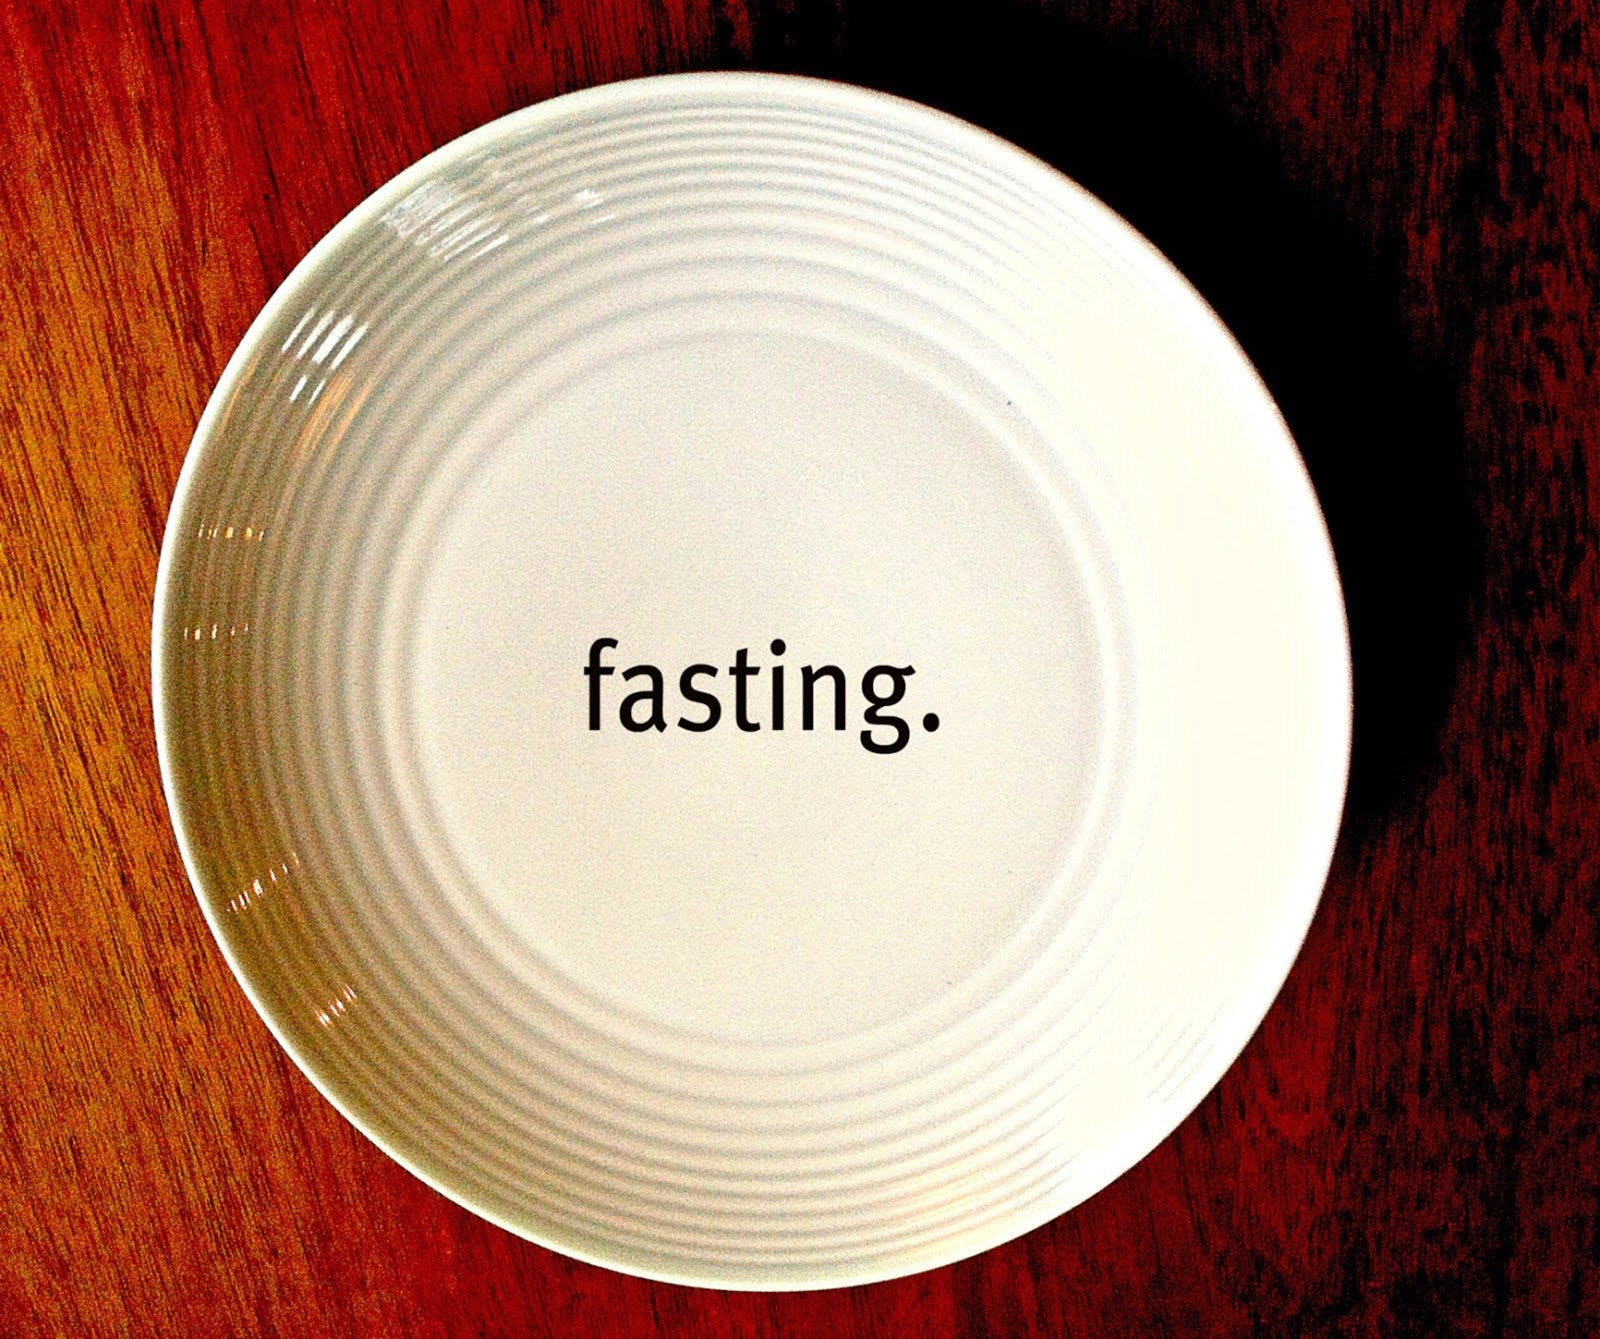 <strong>Fasting</strong> – The New 'Recipe' for Success?